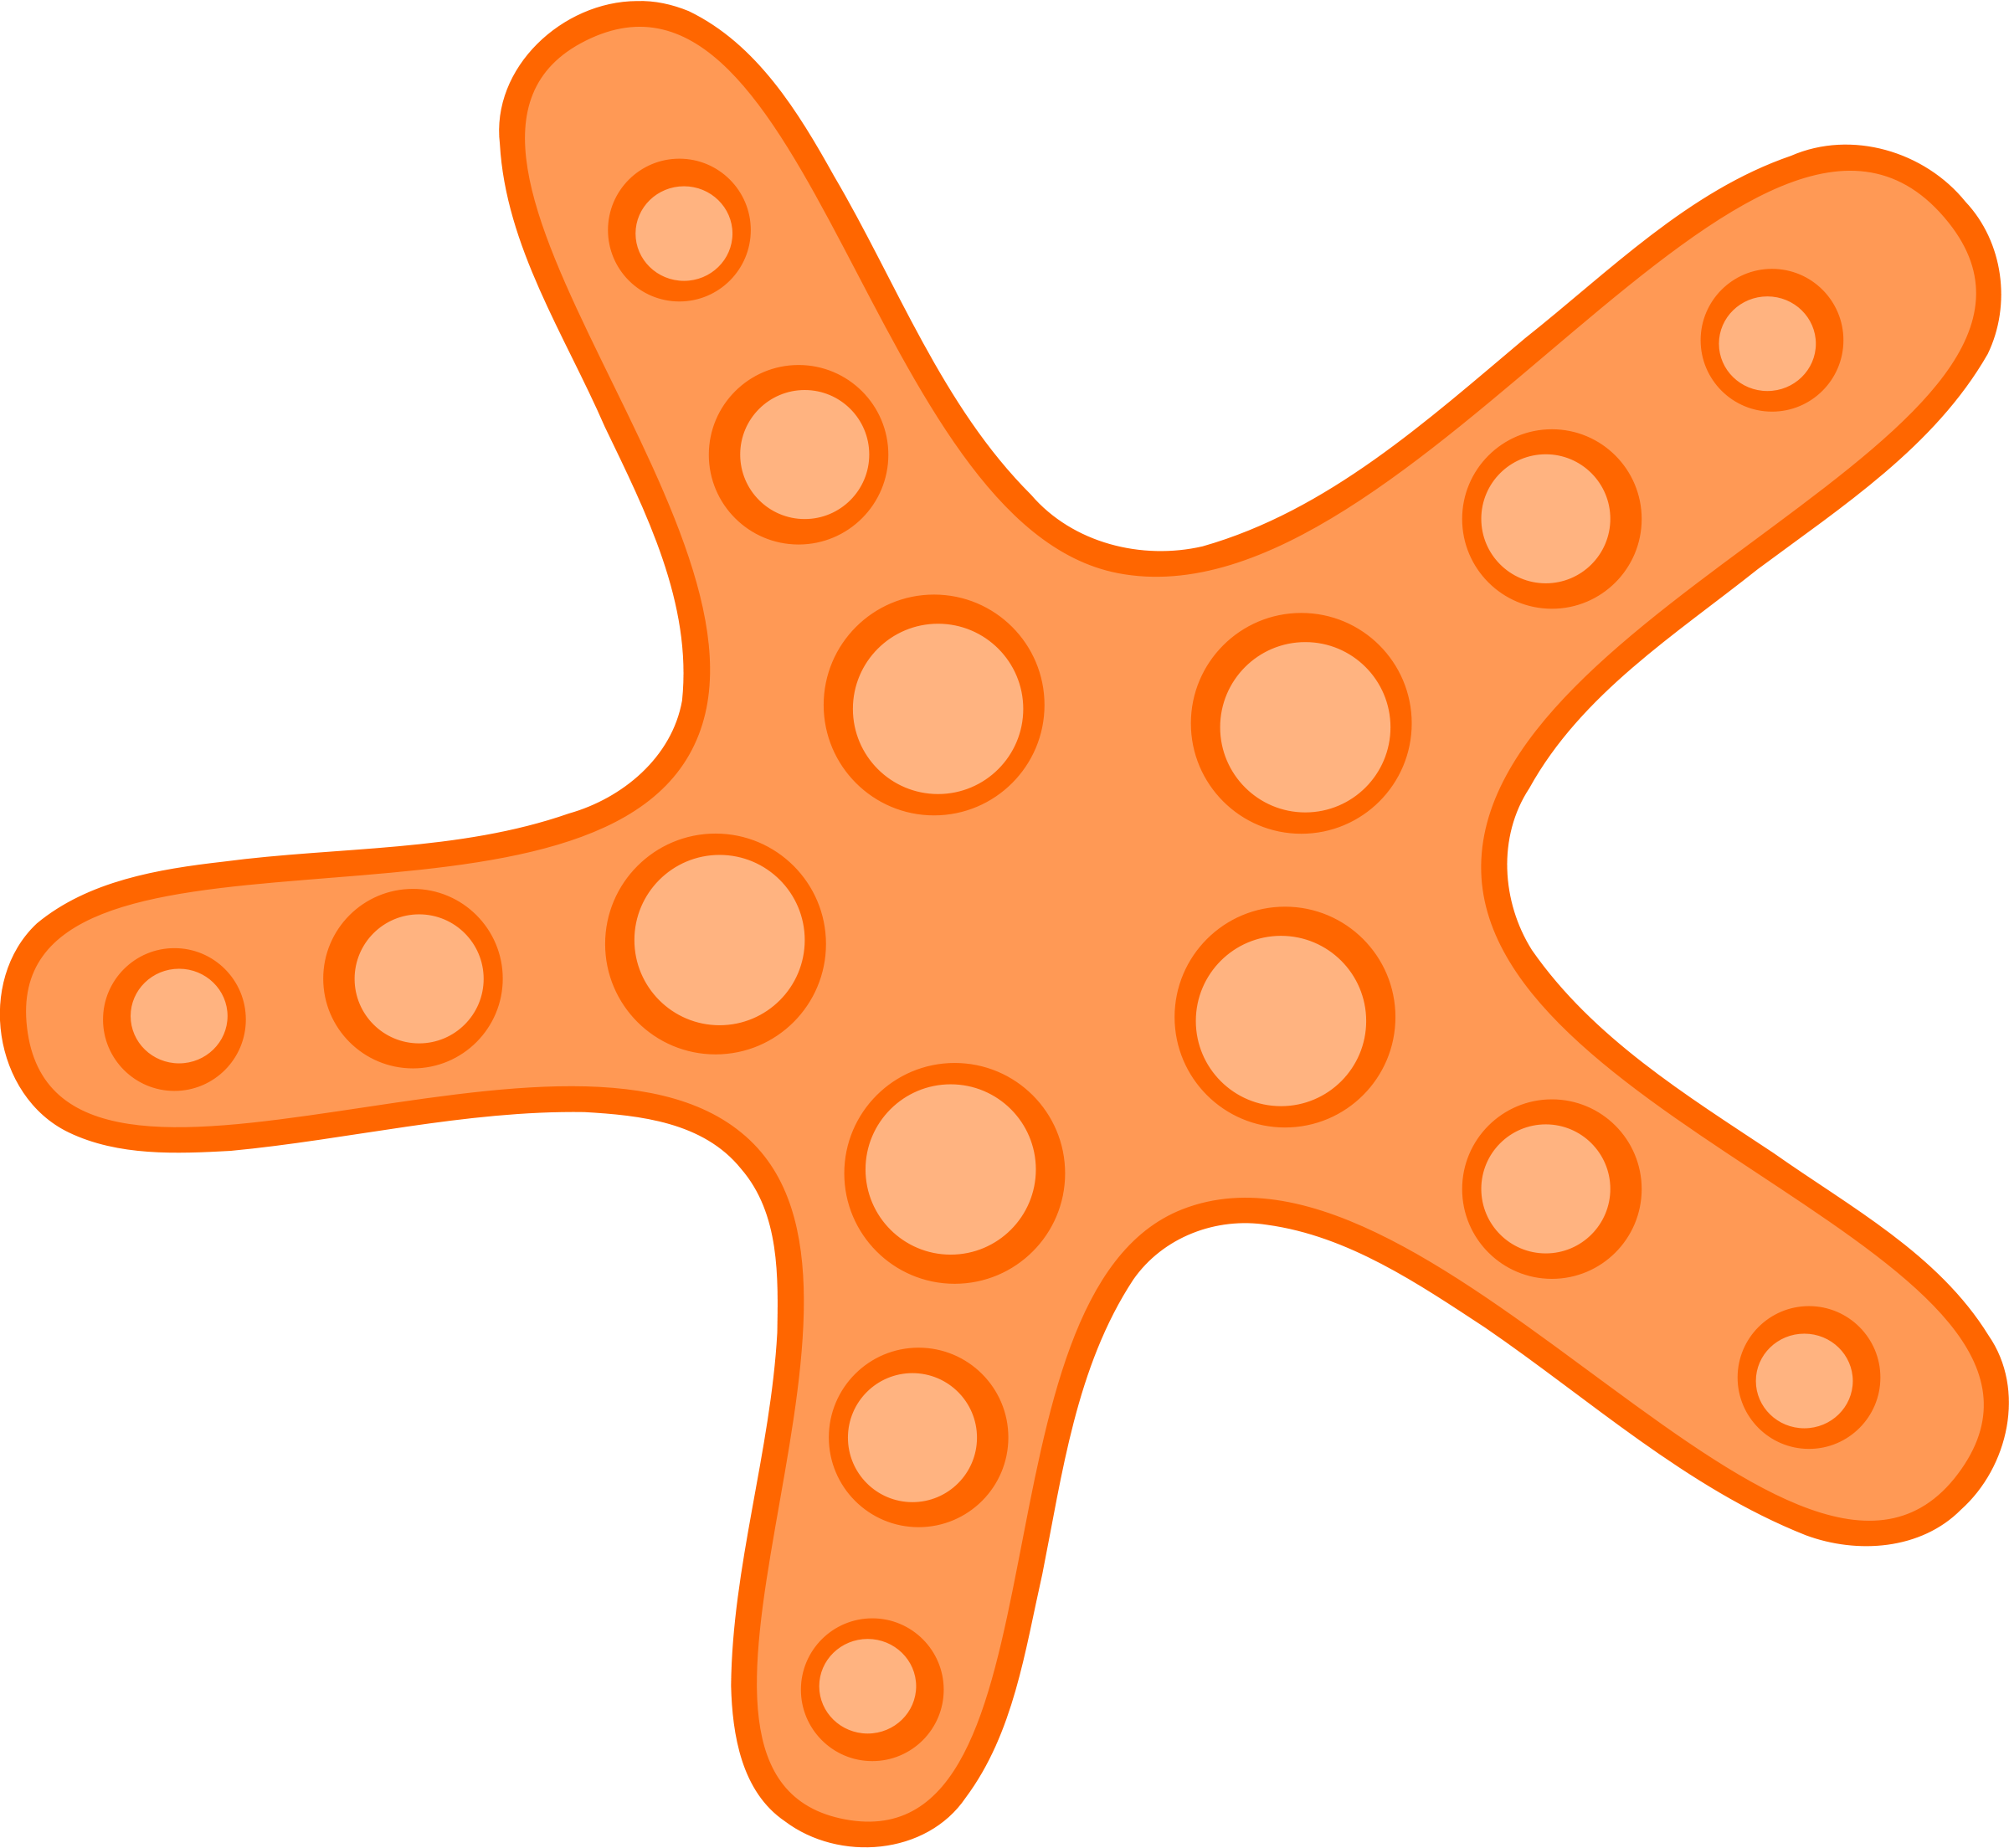 Starfish clipart #5, Download drawings